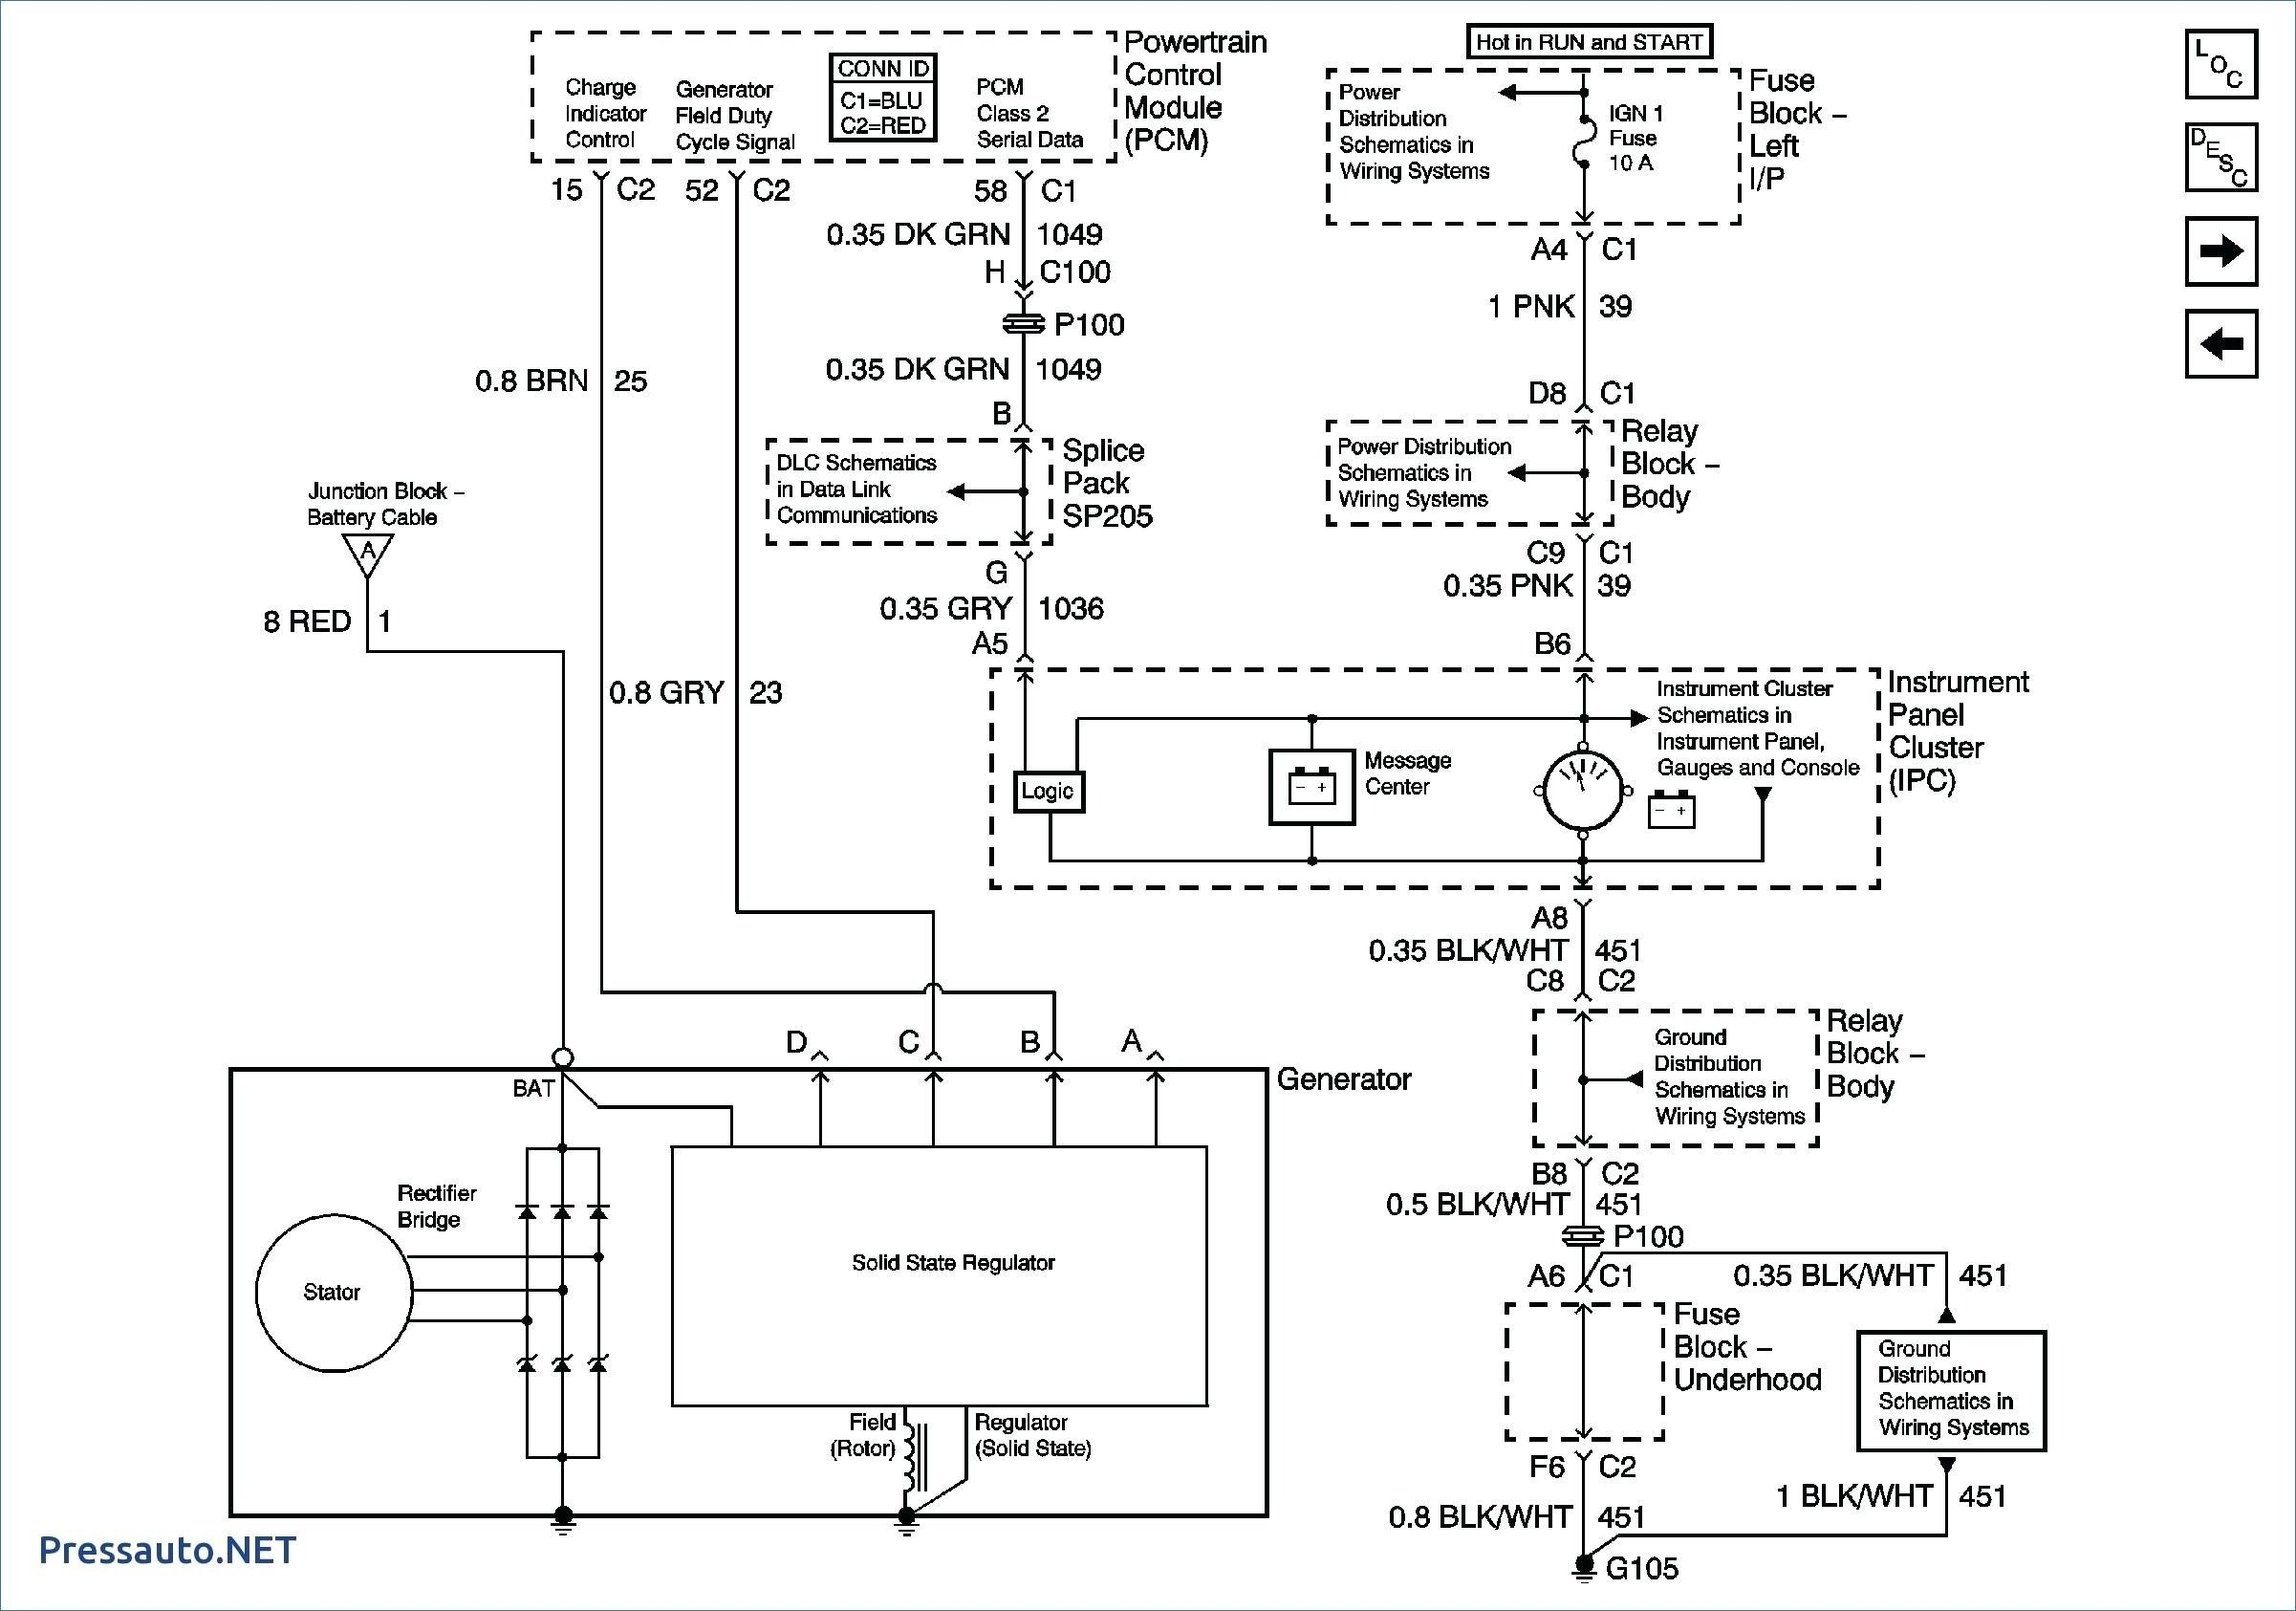 93 Ford F450 Wiring Diagram - Electrical Wiring Diagram • Alternator Wiring Diagrams Ford F on ford f 450 maintenance schedule, ford f-150 front suspension diagram, ford stereo wiring diagrams, ford f 450 neutral safety switch, ford f 450 engine, ford f-450 fuse box diagram, ford f100 wiring diagrams, 2011 f350 wiring diagram, ford e 350 wiring diagrams, ford truck wiring diagrams, ford f 250 fuse diagram, f350 super duty fuse diagram, ford car radio wire diagrams, ford f-150 fuse box diagram, ford f 350 wiring diagram, 2003 f250 fuse panel wiring diagram, ford f 450 commercial truck, ford wiring harness diagrams, vehicle remote starter wiring diagram, ford f550 wiring-diagram,